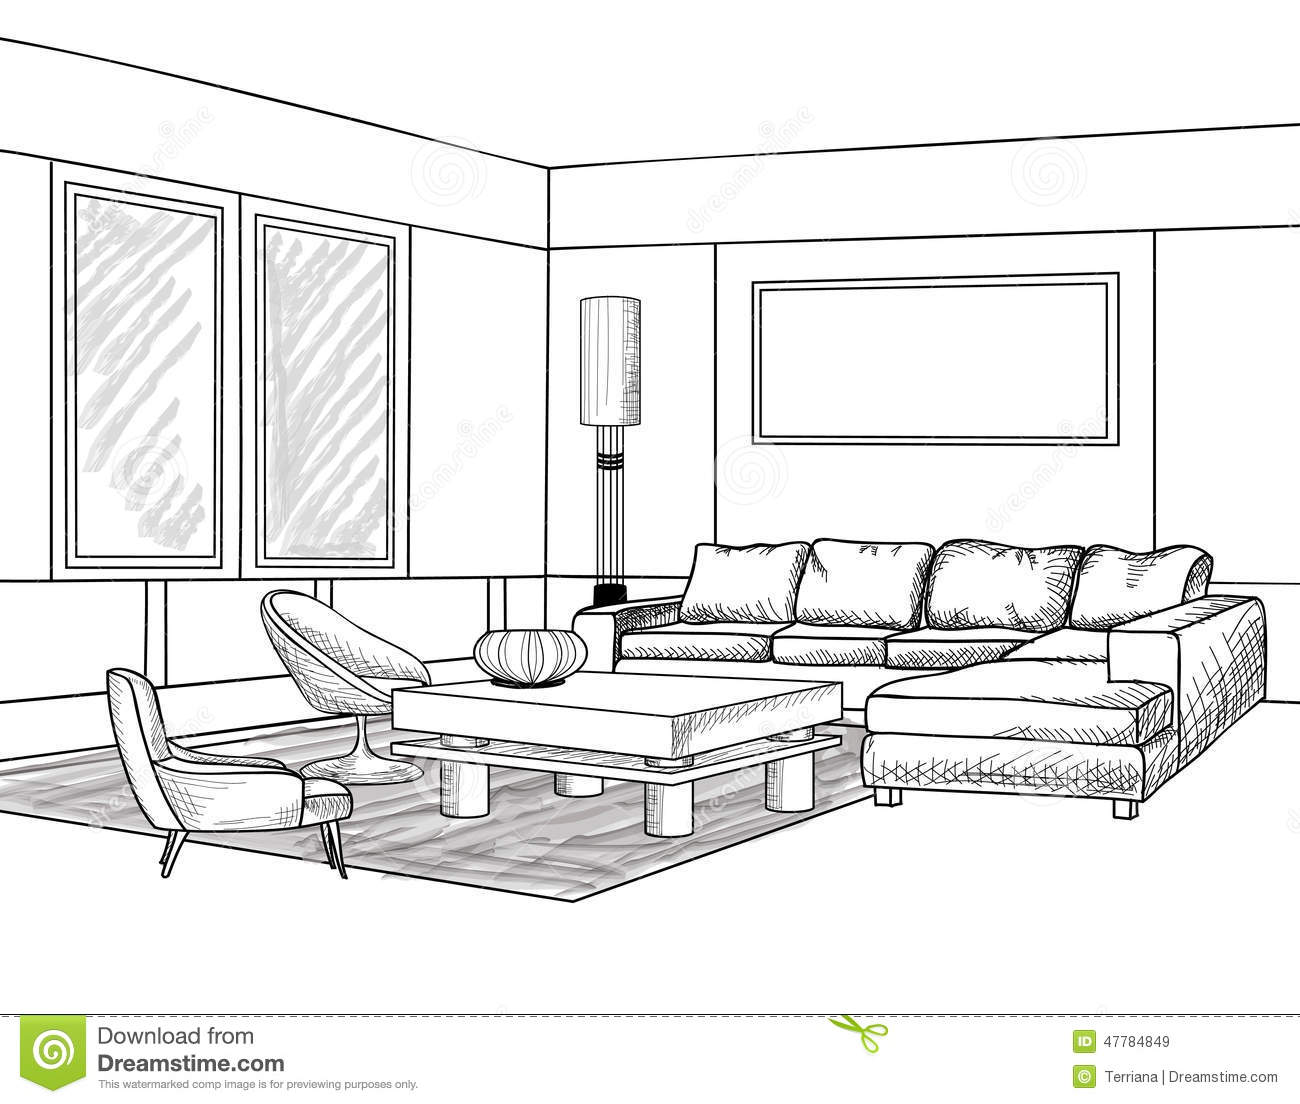 Stock Illustration Interior Outline Sketch Furniture Blueprint Living Room Morden Styly Image47784849 on home residential